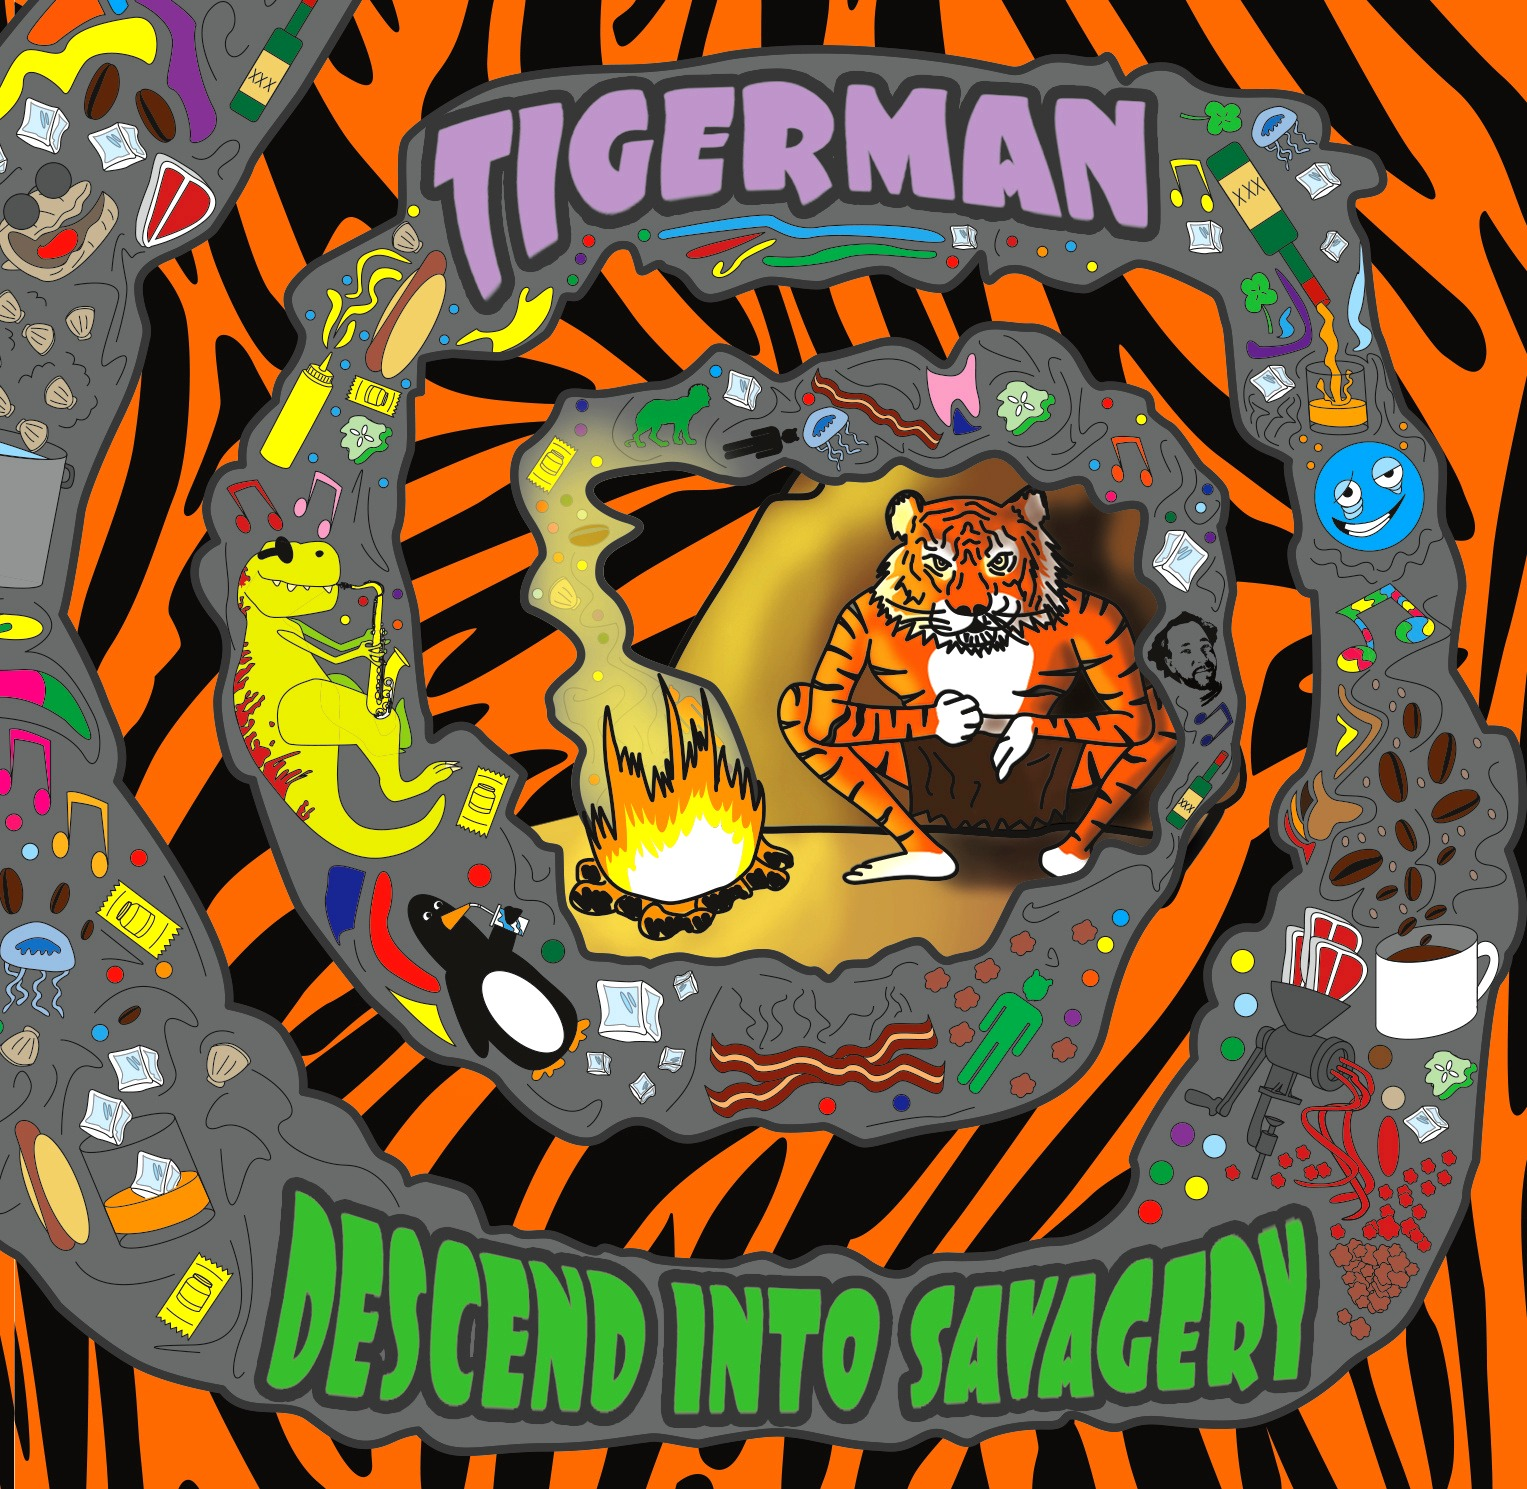 Descend Into Savagery Tigerman Album Fro